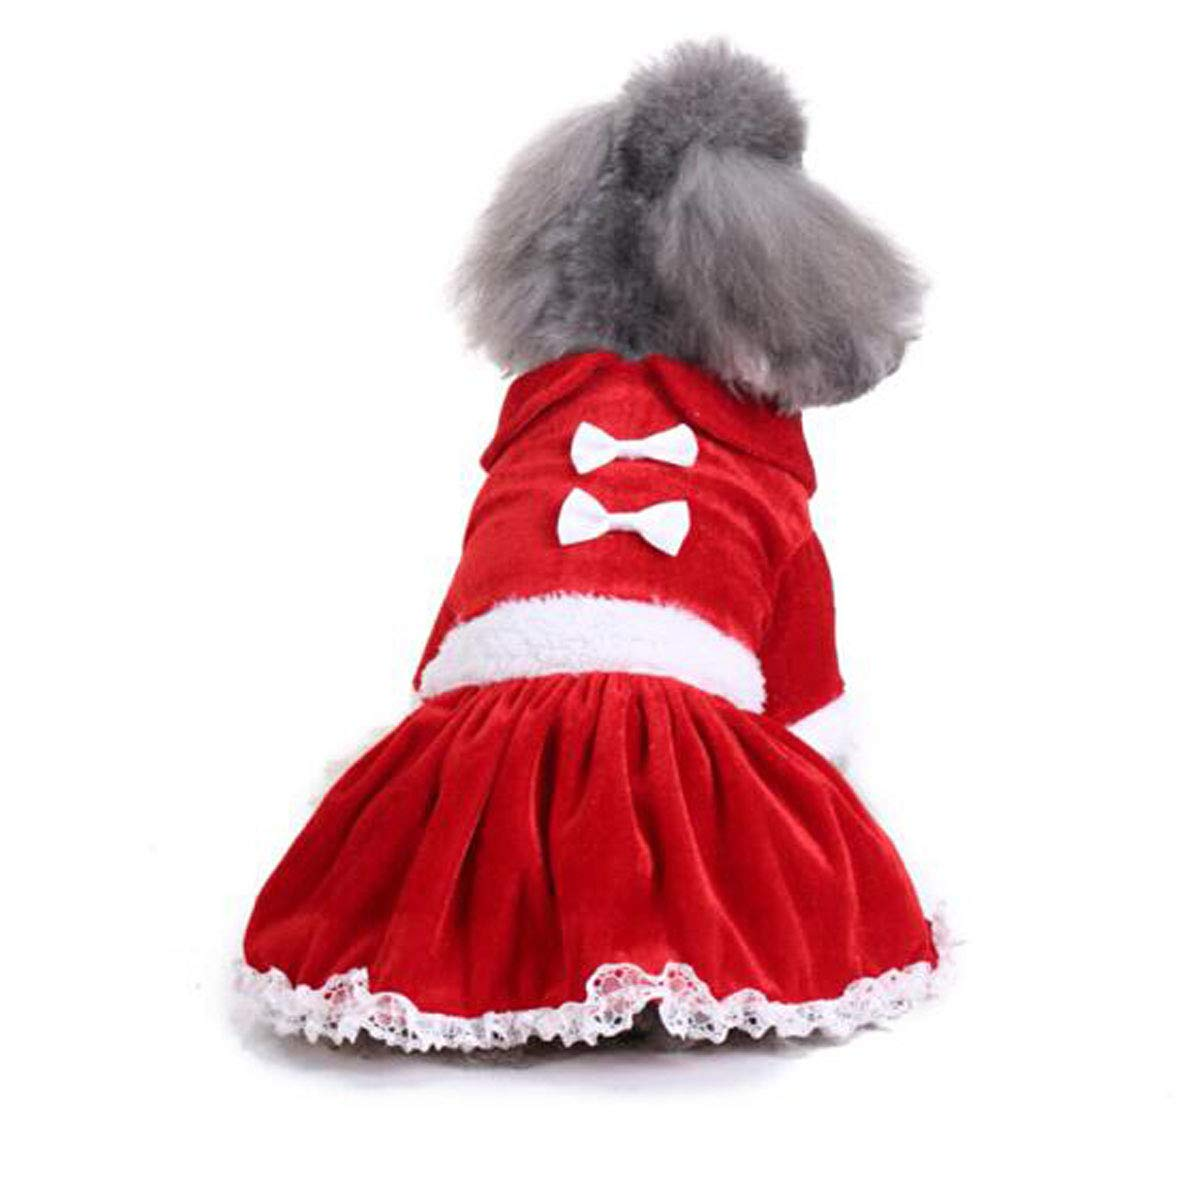 Chritmas bear red L Chritmas bear red L Pet Dog Autumn and Winter Four-Legged Clothes, Small Dog Christmas Bear Costume (color   Chritmas Bear red, Size   L)